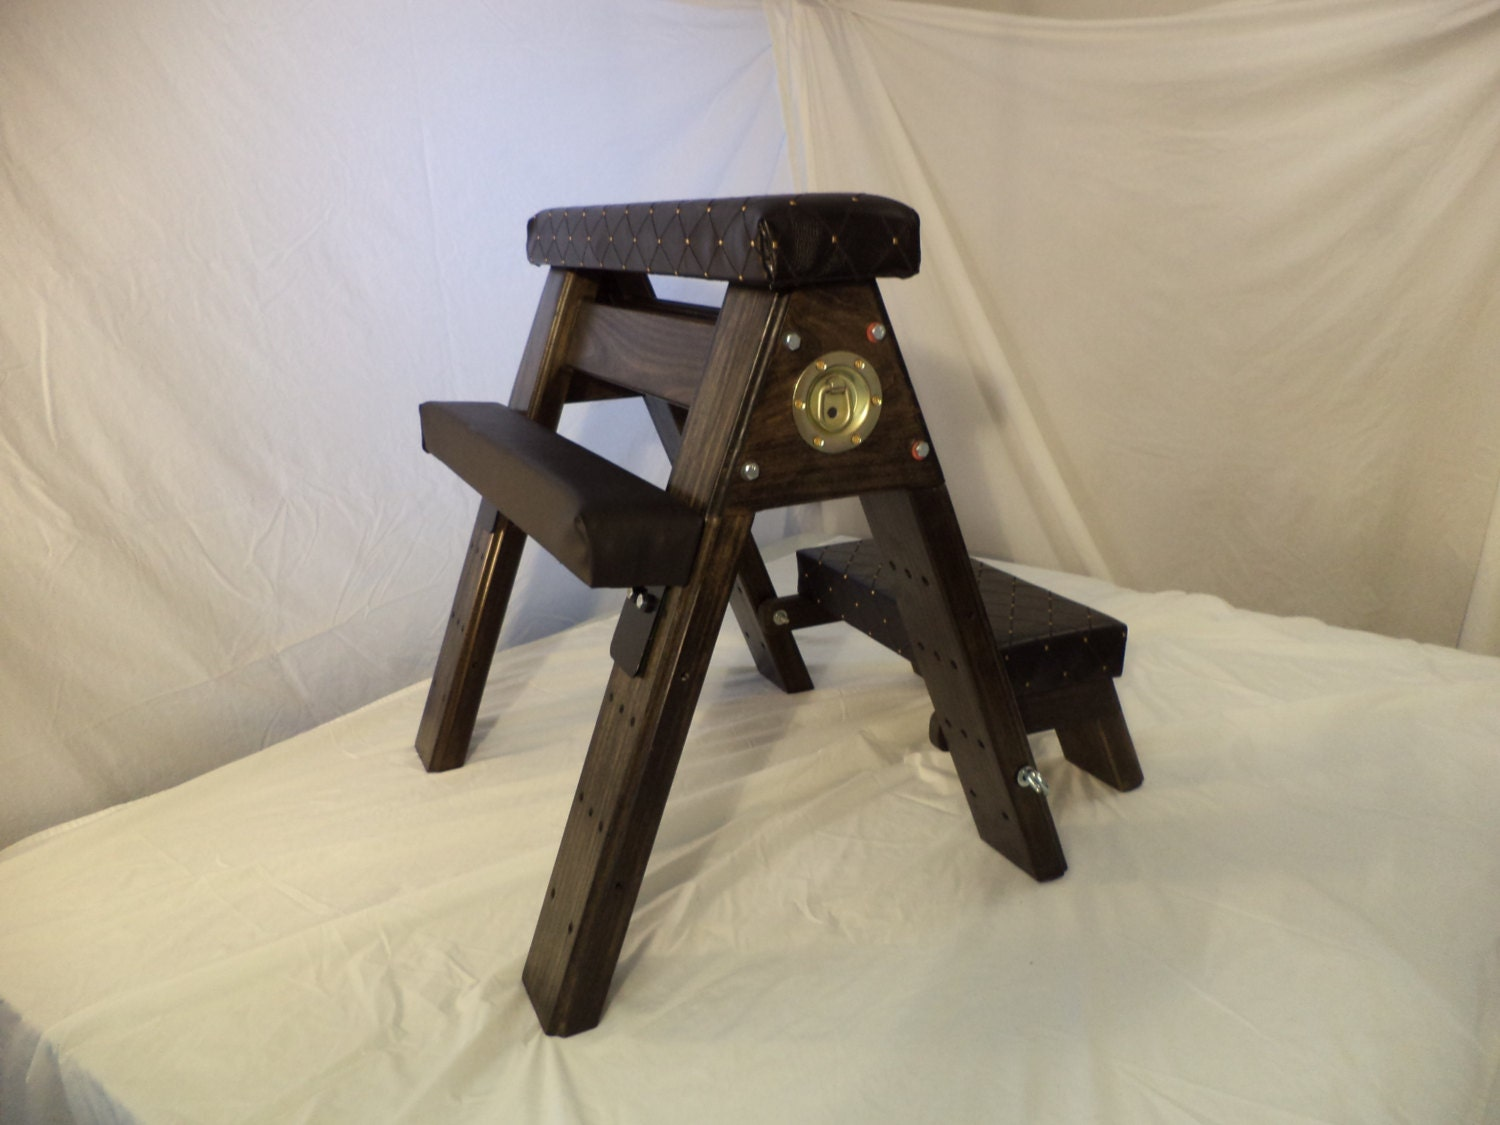 Bdsm Spanking Bench With Kneeler And Arm Leg Rests